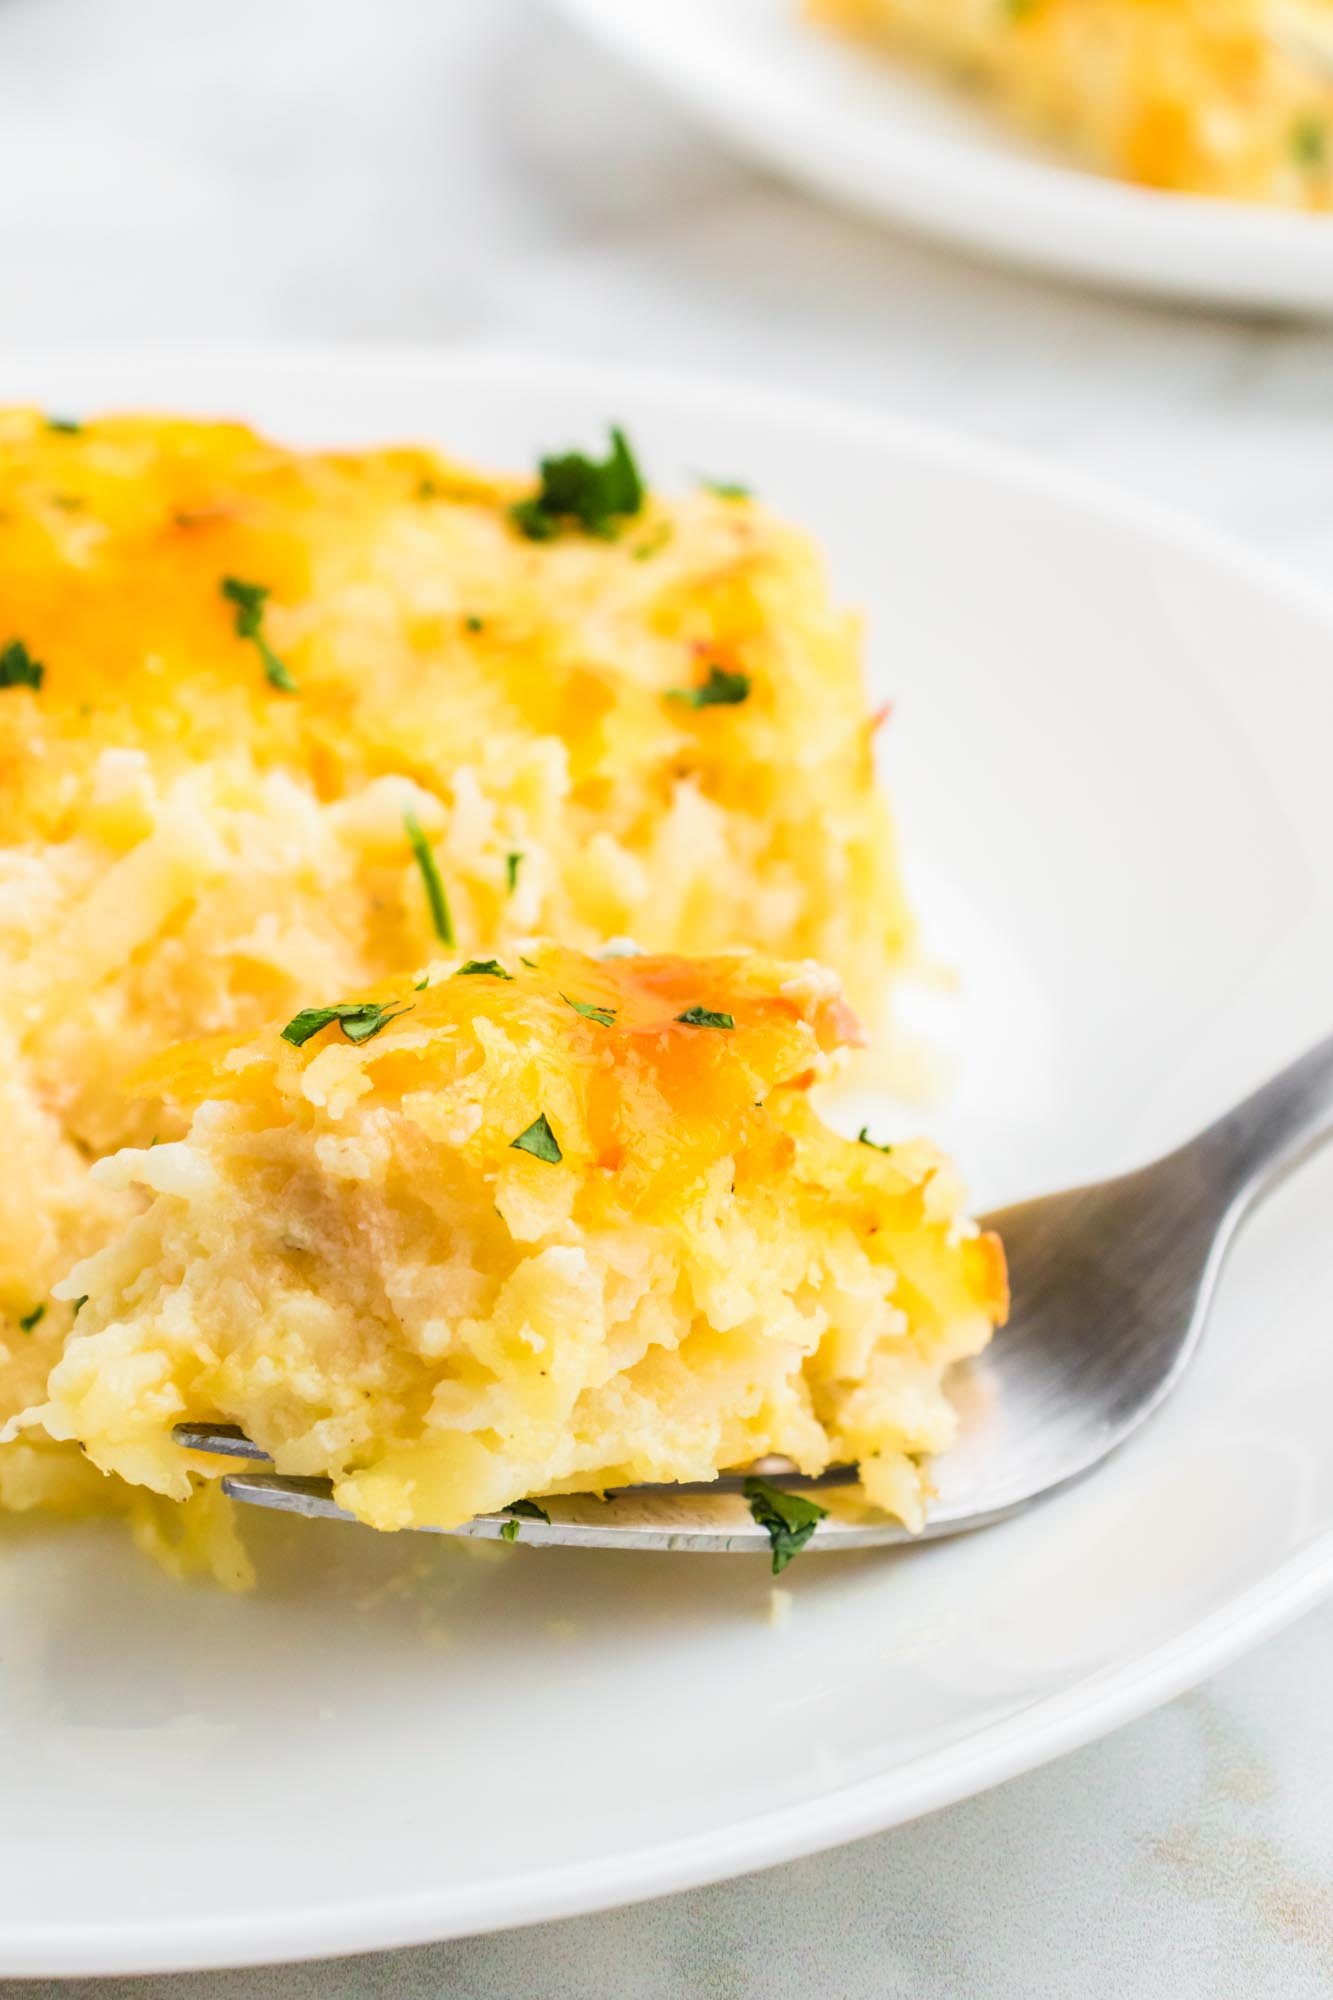 Taking a bite of Cracker Barrel hashbrown casserole with a fork